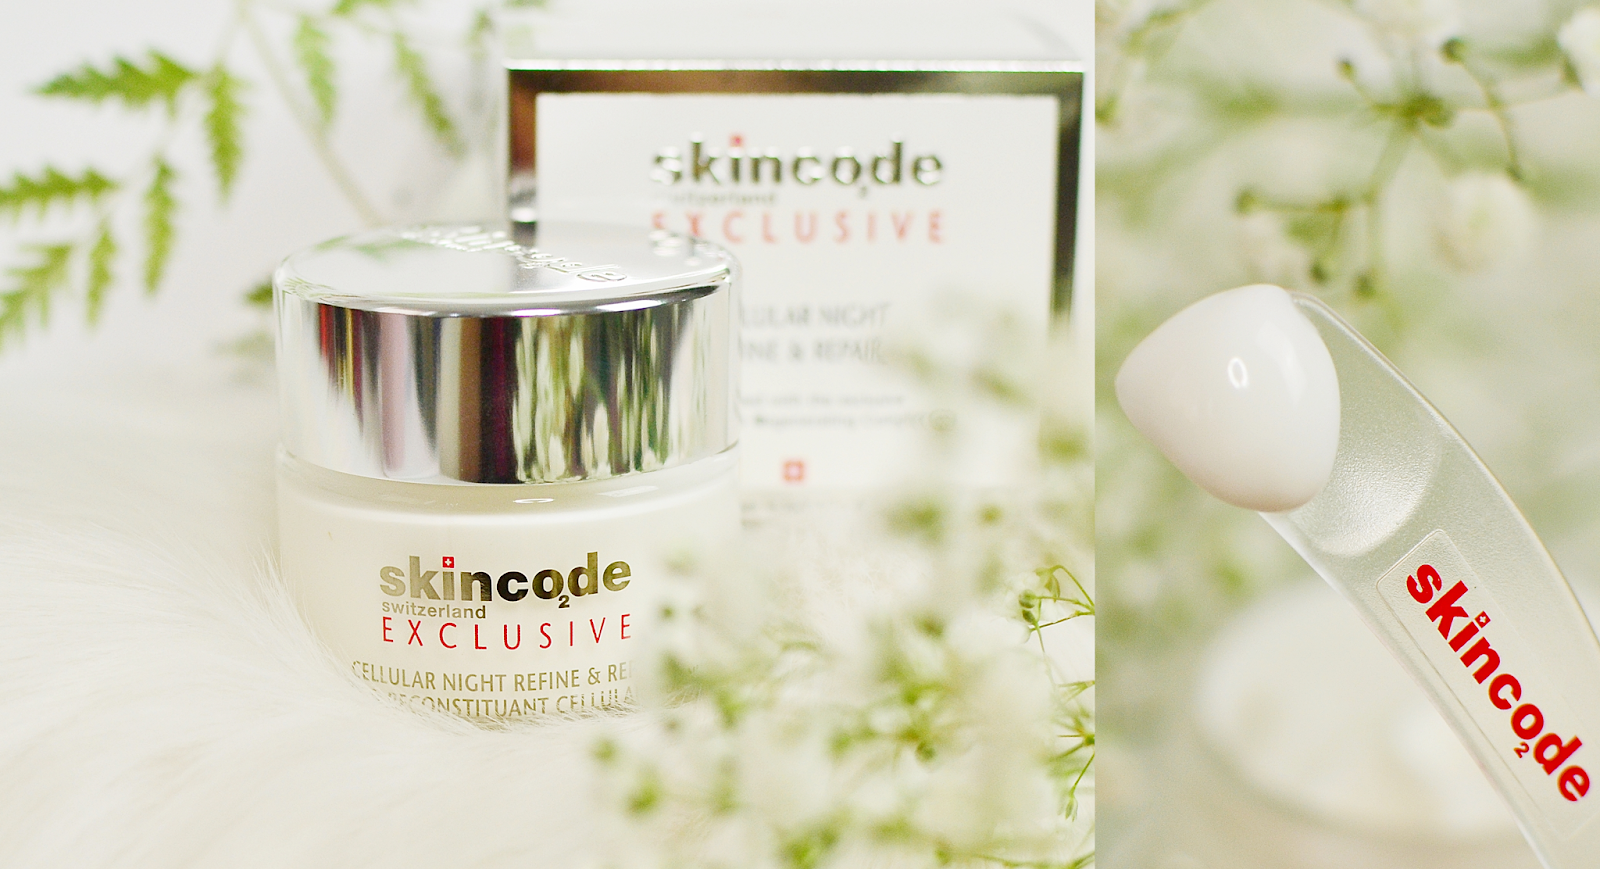 SkinCode Essentials SkinCode Exclusive